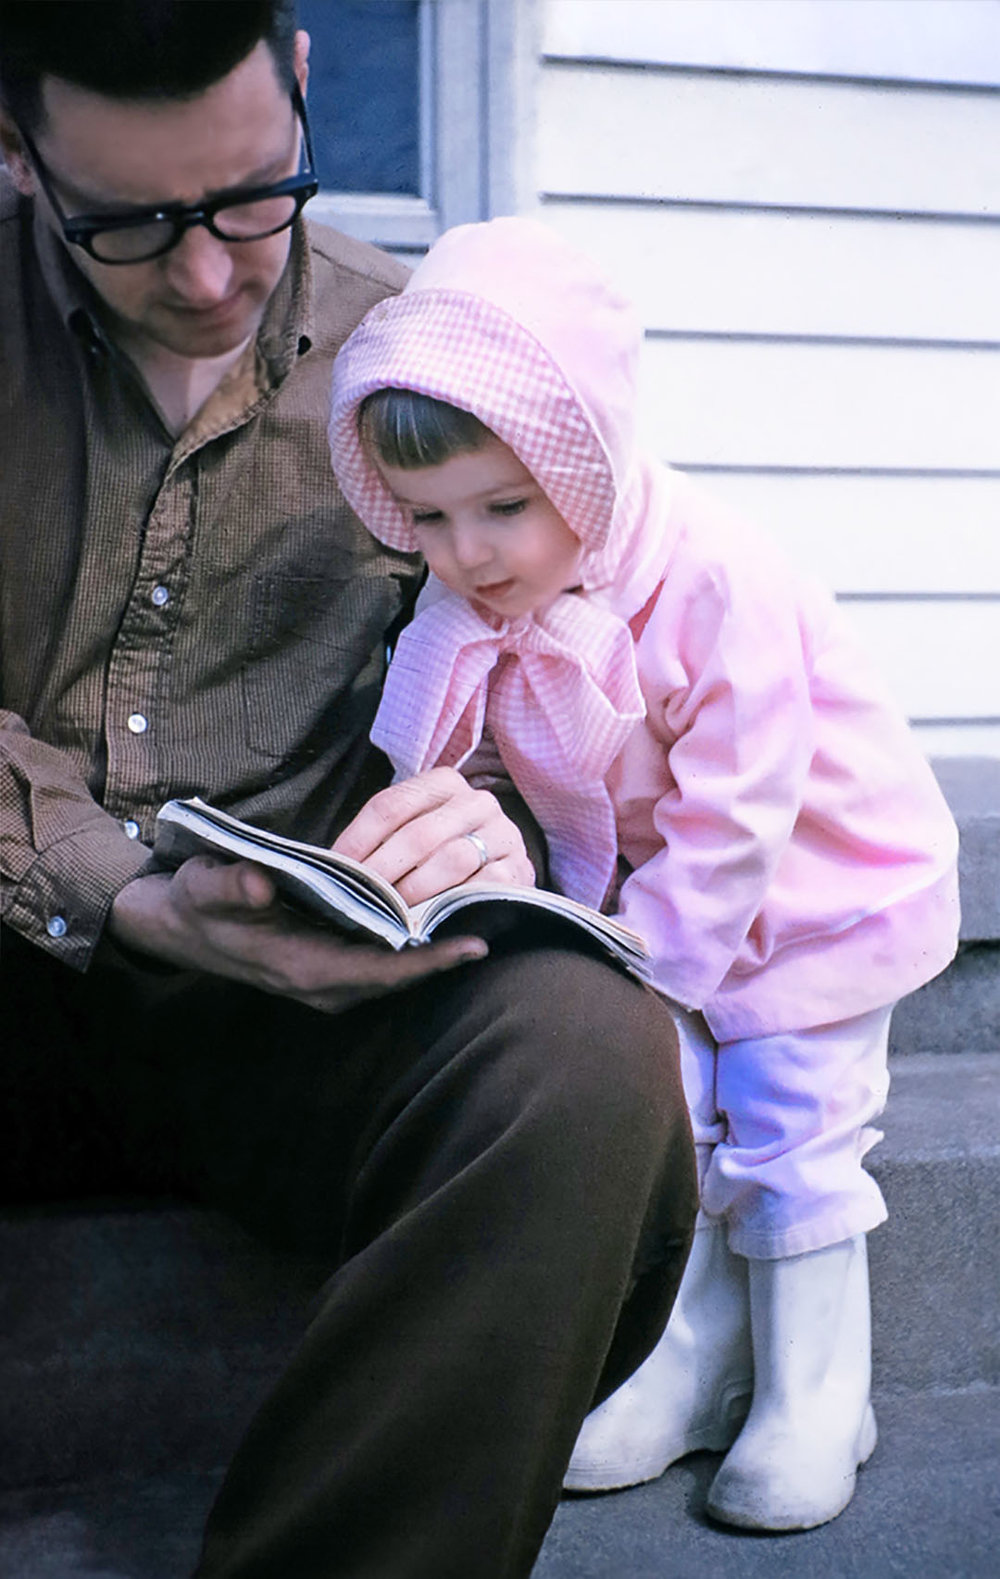 After the birthday party, bundled in a pink bonnet, reading a good book with Dad.